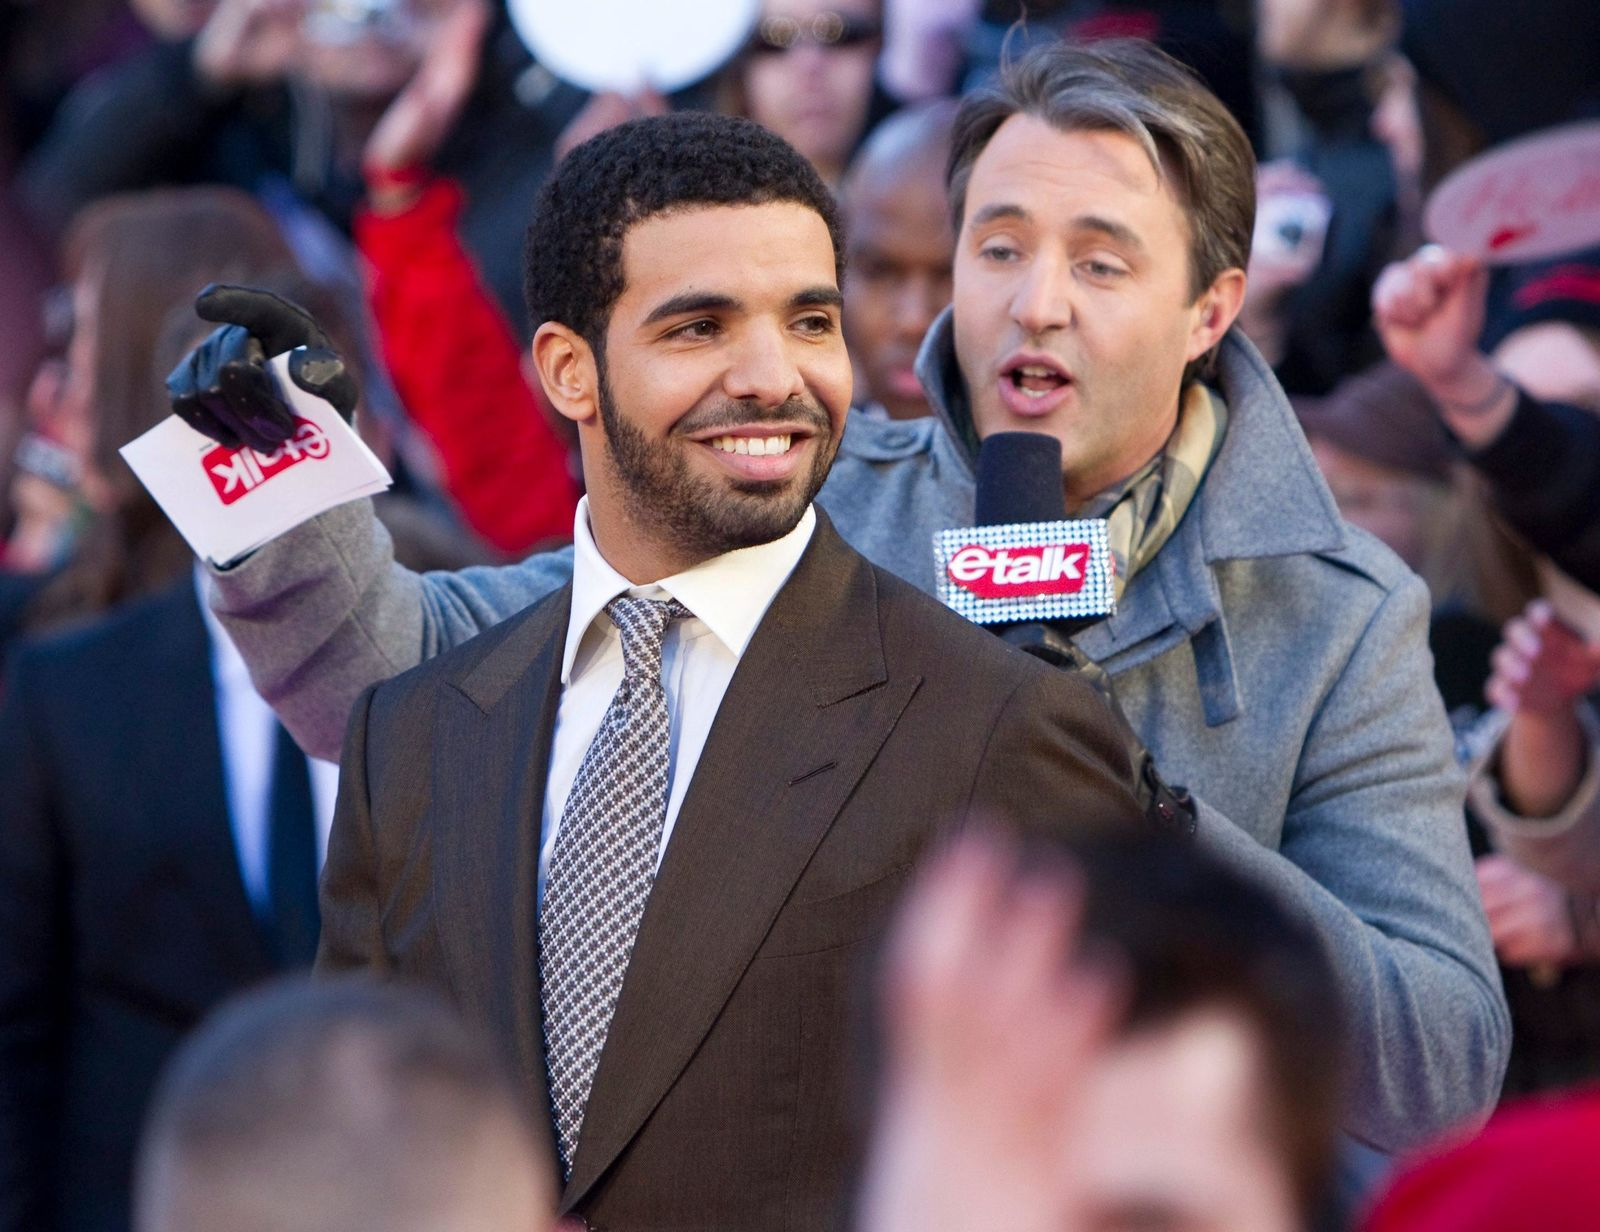 In this March 27, 2011 file photo, Drake arrives on the red carpet at the 2011 JUNO Awards, Canada's music awards in Toronto. Drake claims rival rapper Pusha T used a blackface photo out of context.{ } (Darren Calabrese/The Canadian Press via AP)